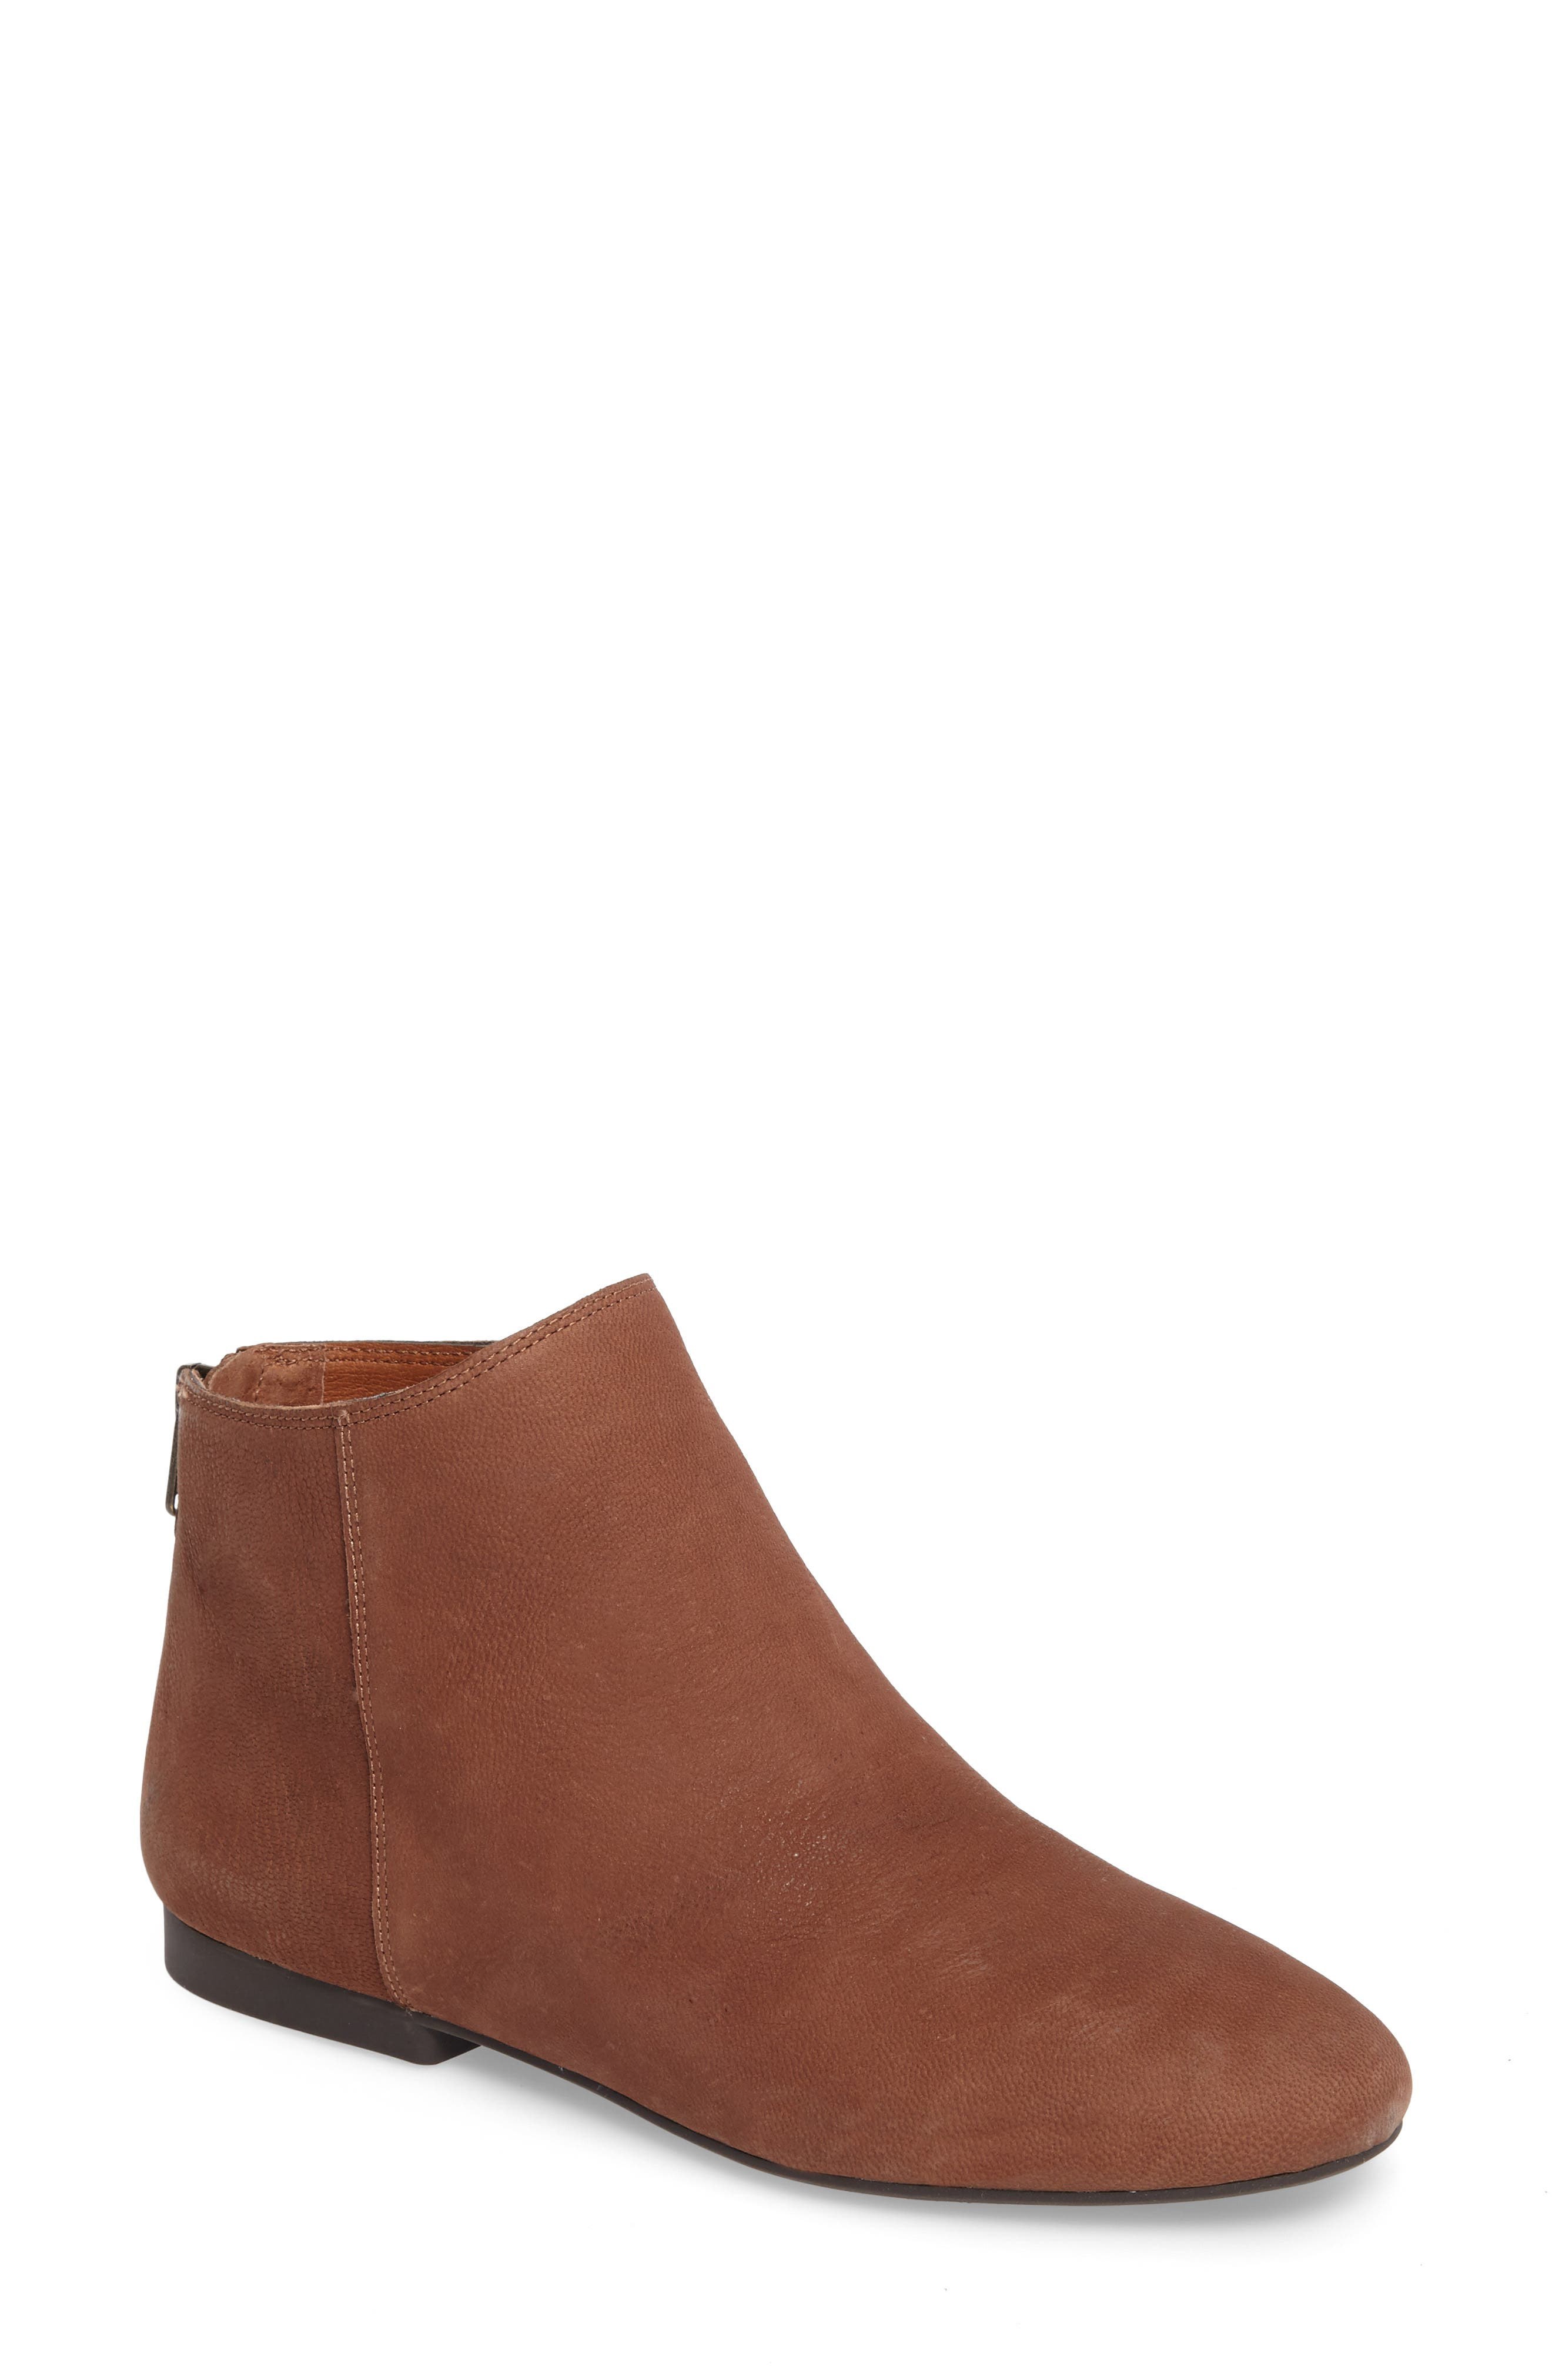 Gaines Bootie,                             Main thumbnail 1, color,                             Toffee Leather